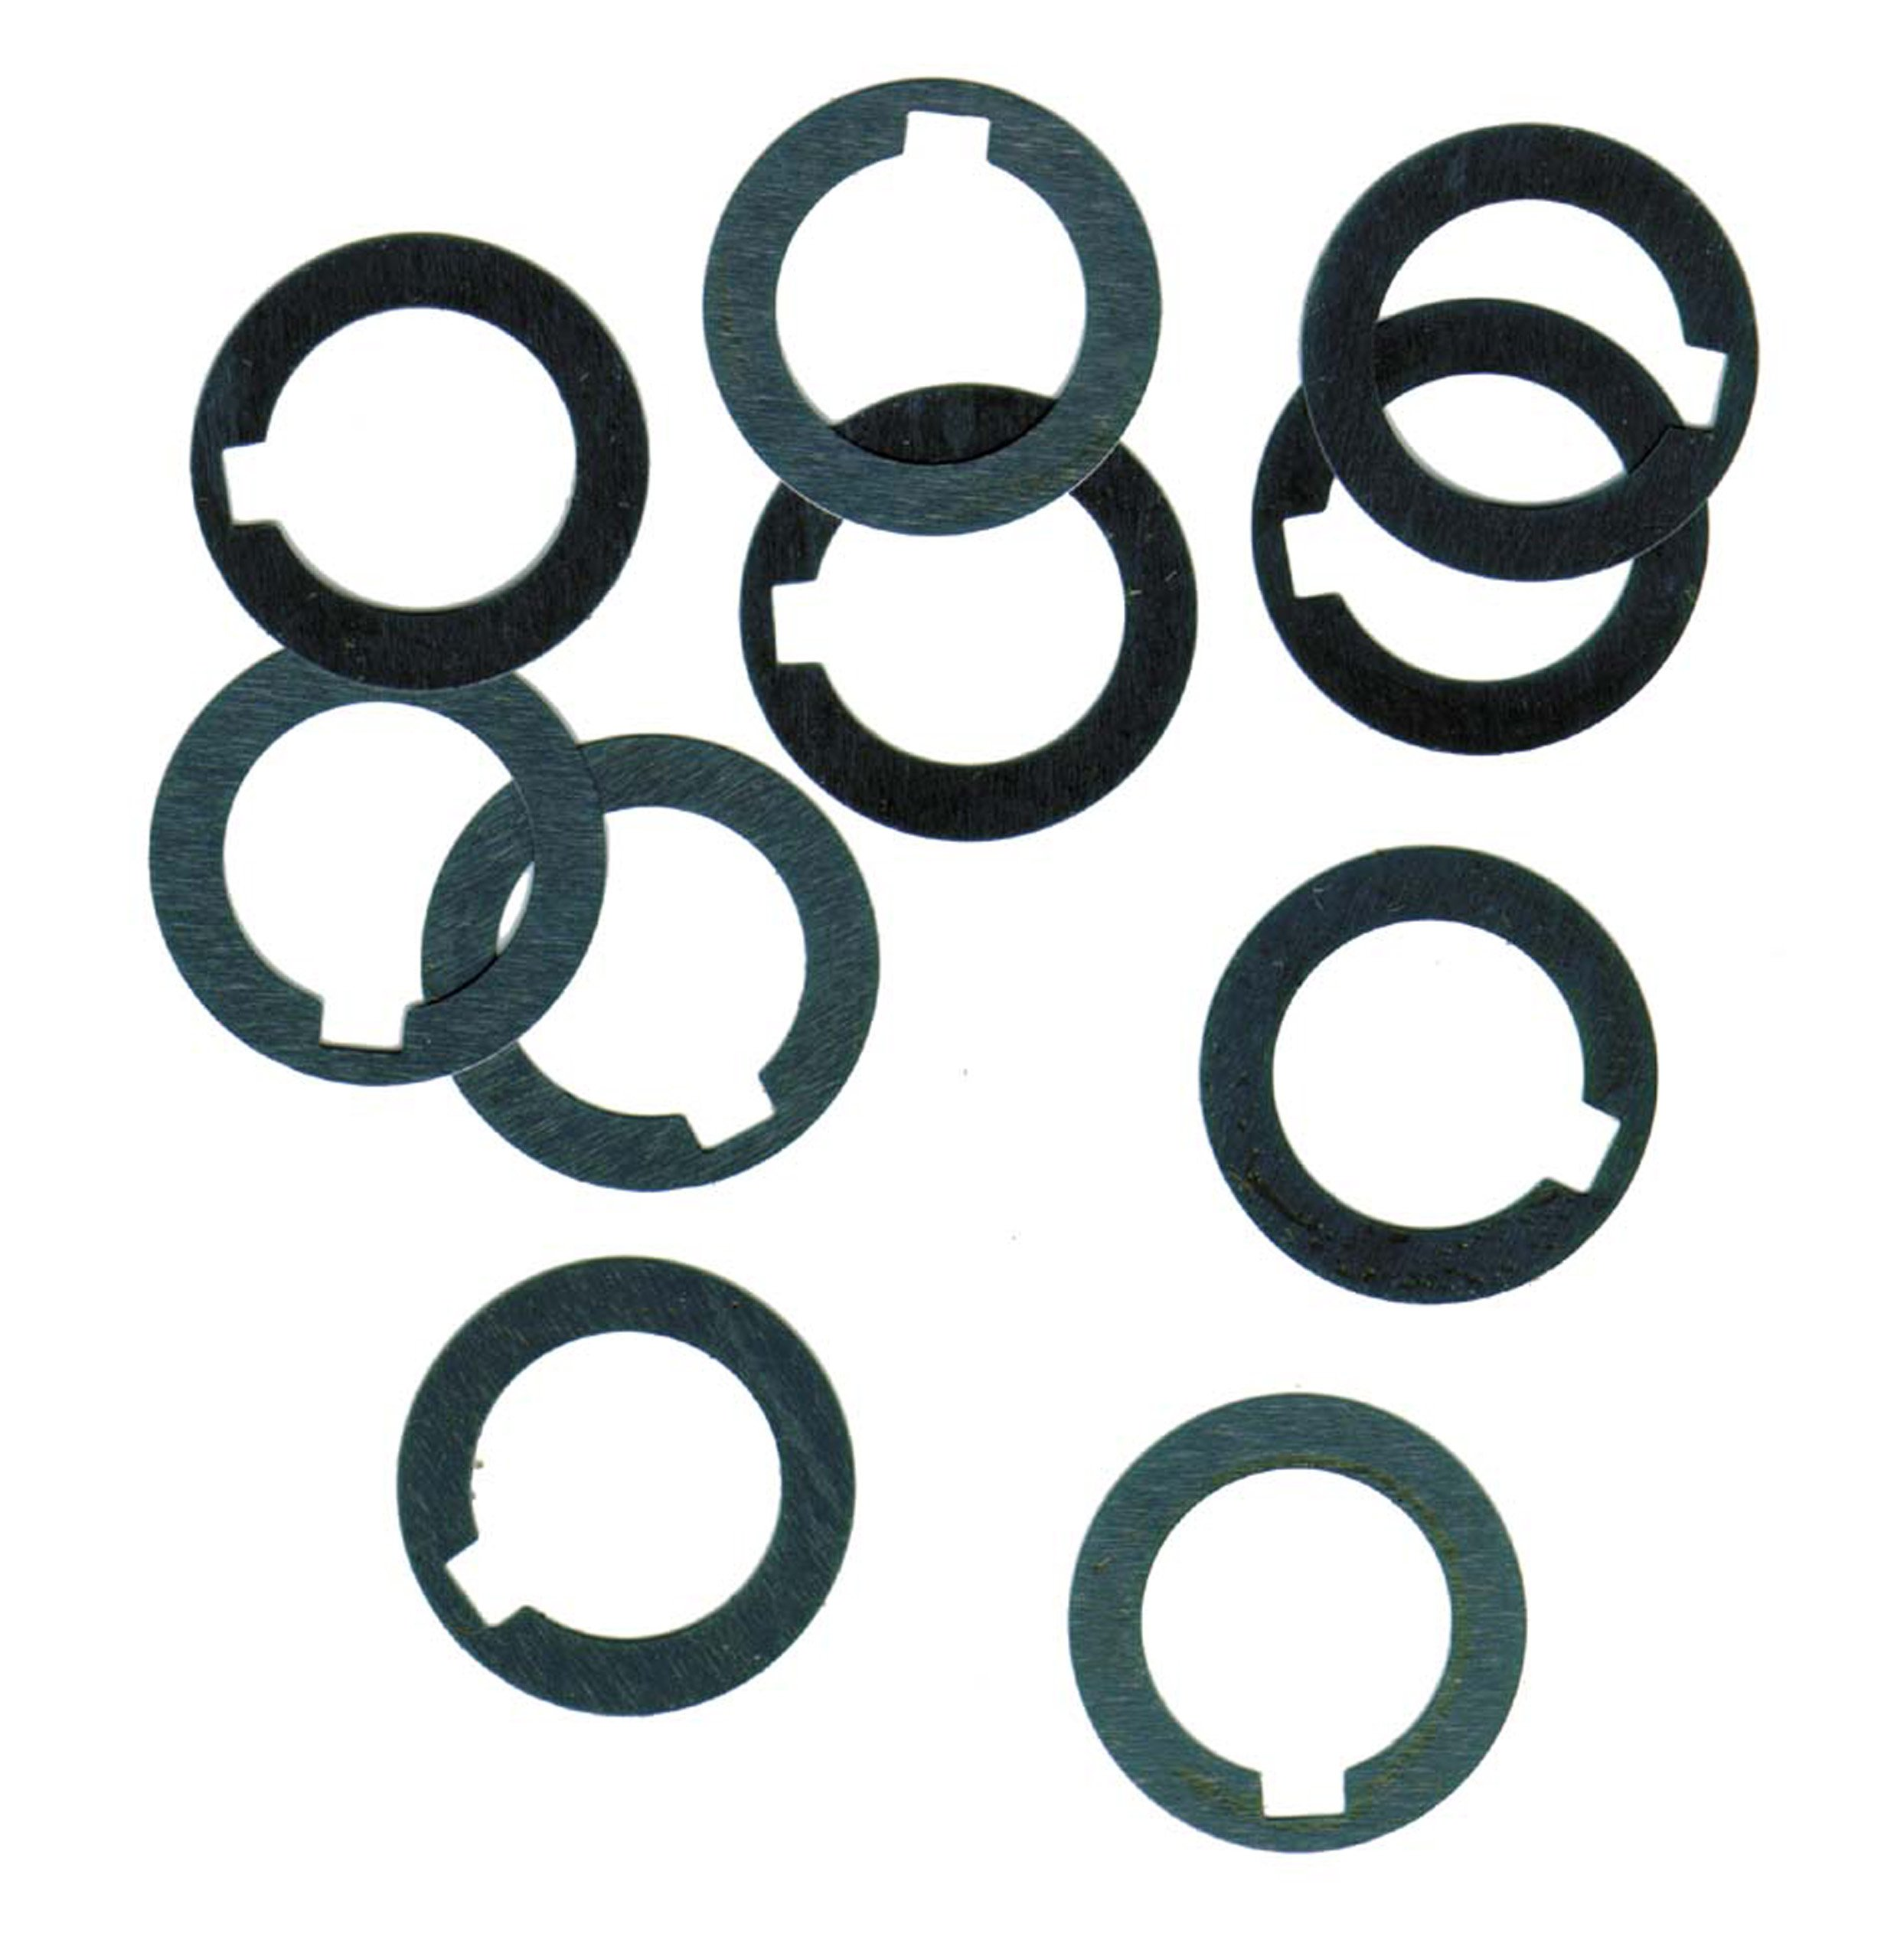 1008/1010 Carbon Steel Notched Shim, Matte Finish, Hard Temper, AISI 1008/AISI 1010, 0.047'' Thickness, 1-3/4'' ID, 2-3/4'' OD (Pack of 10) by Small Parts